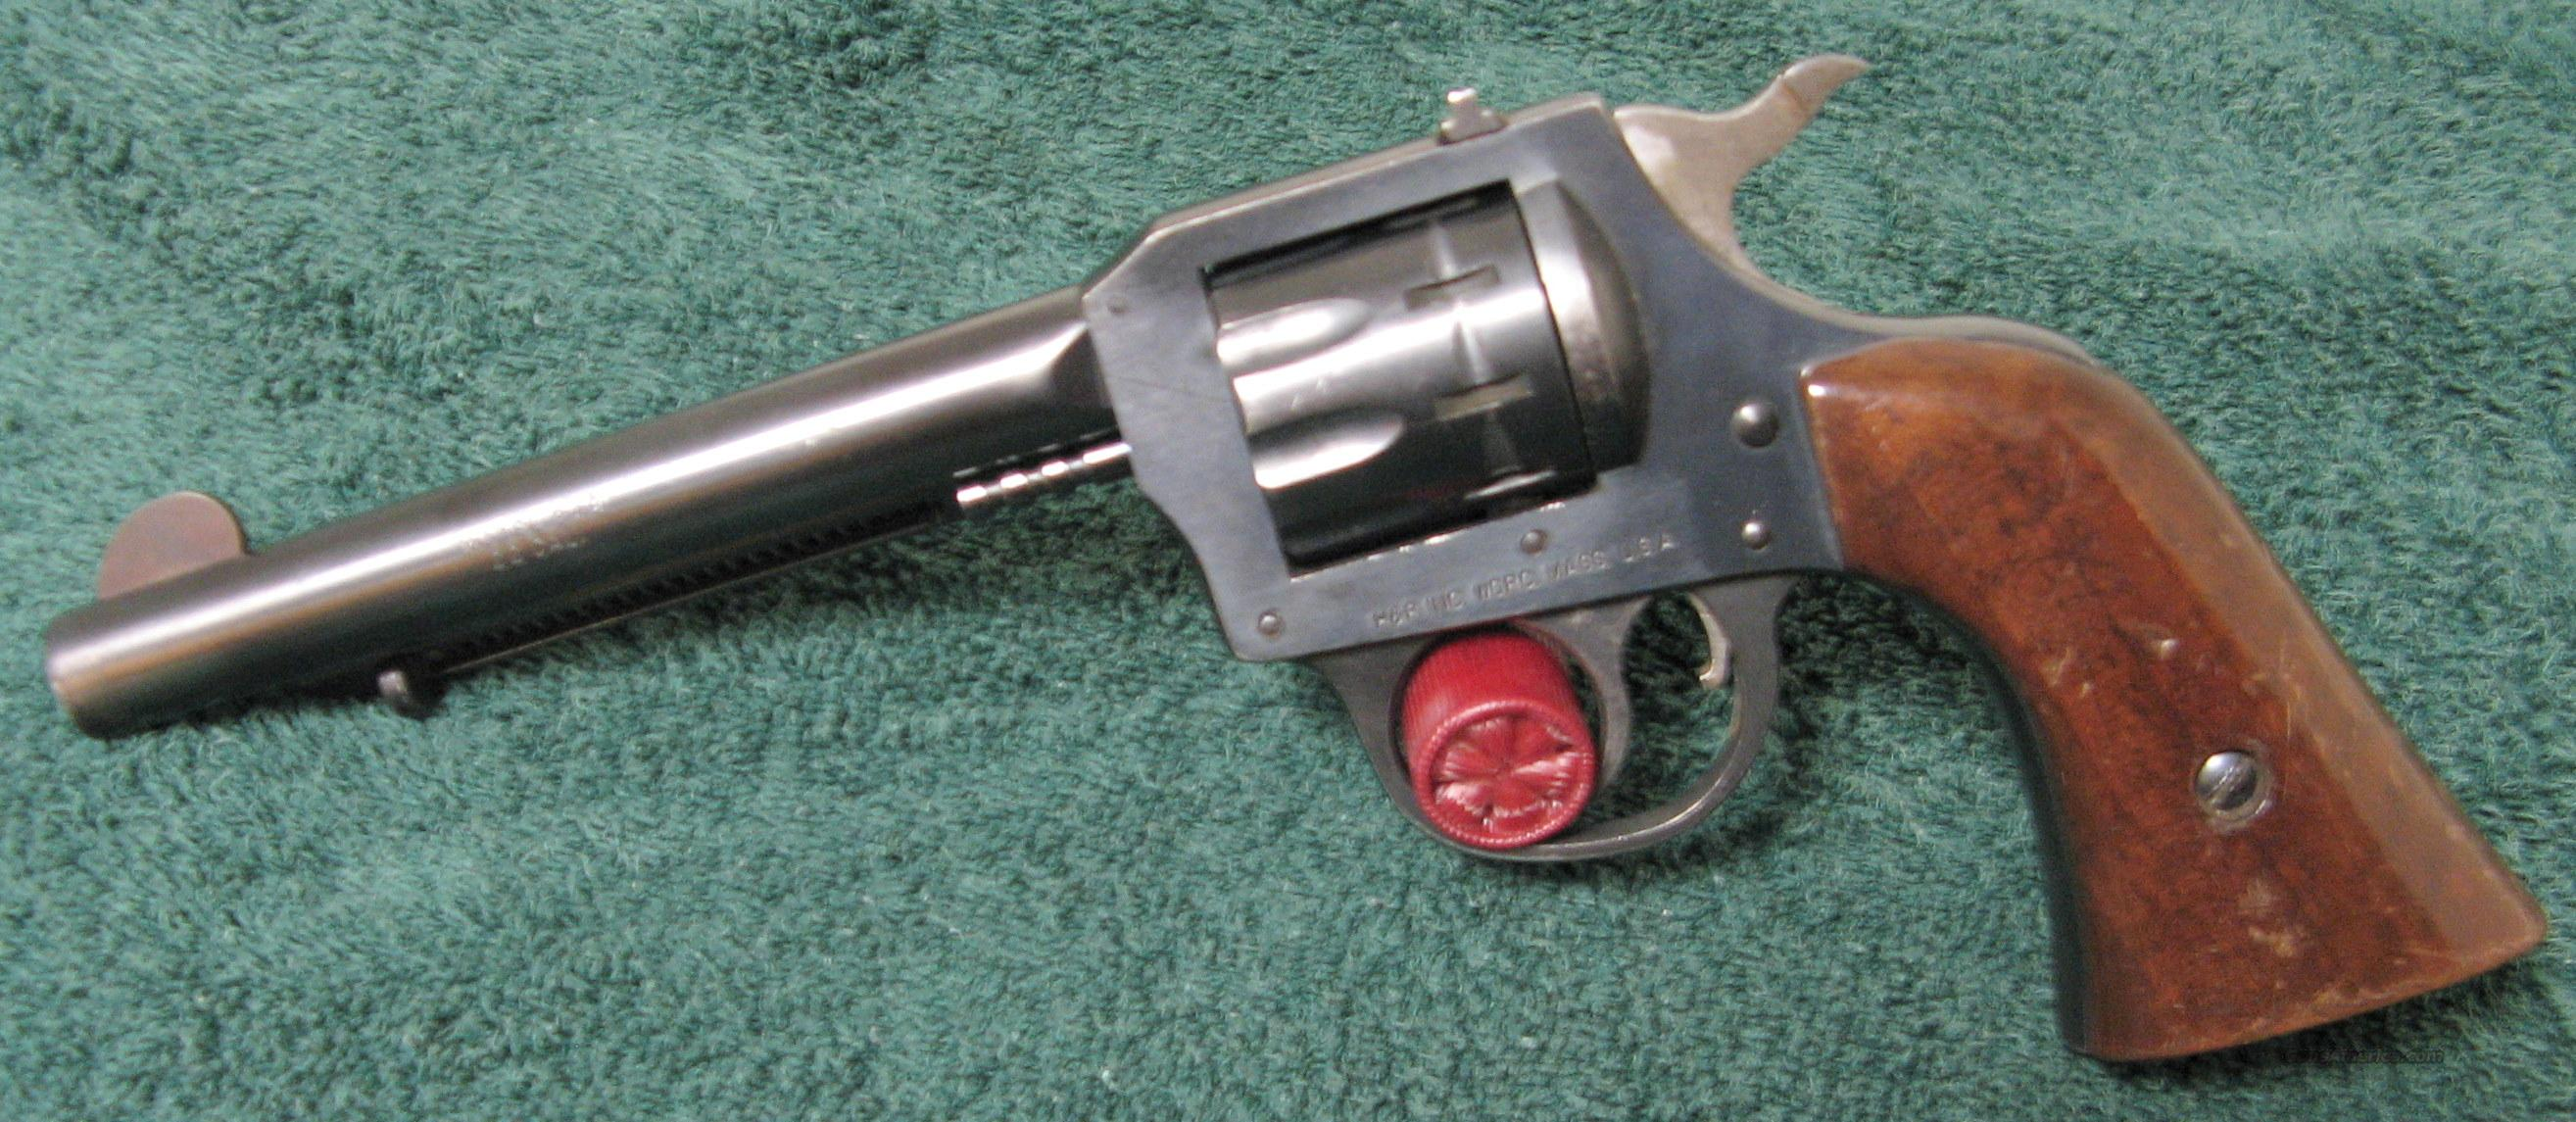 H & R Model 949 .22 cal Revolver for sale